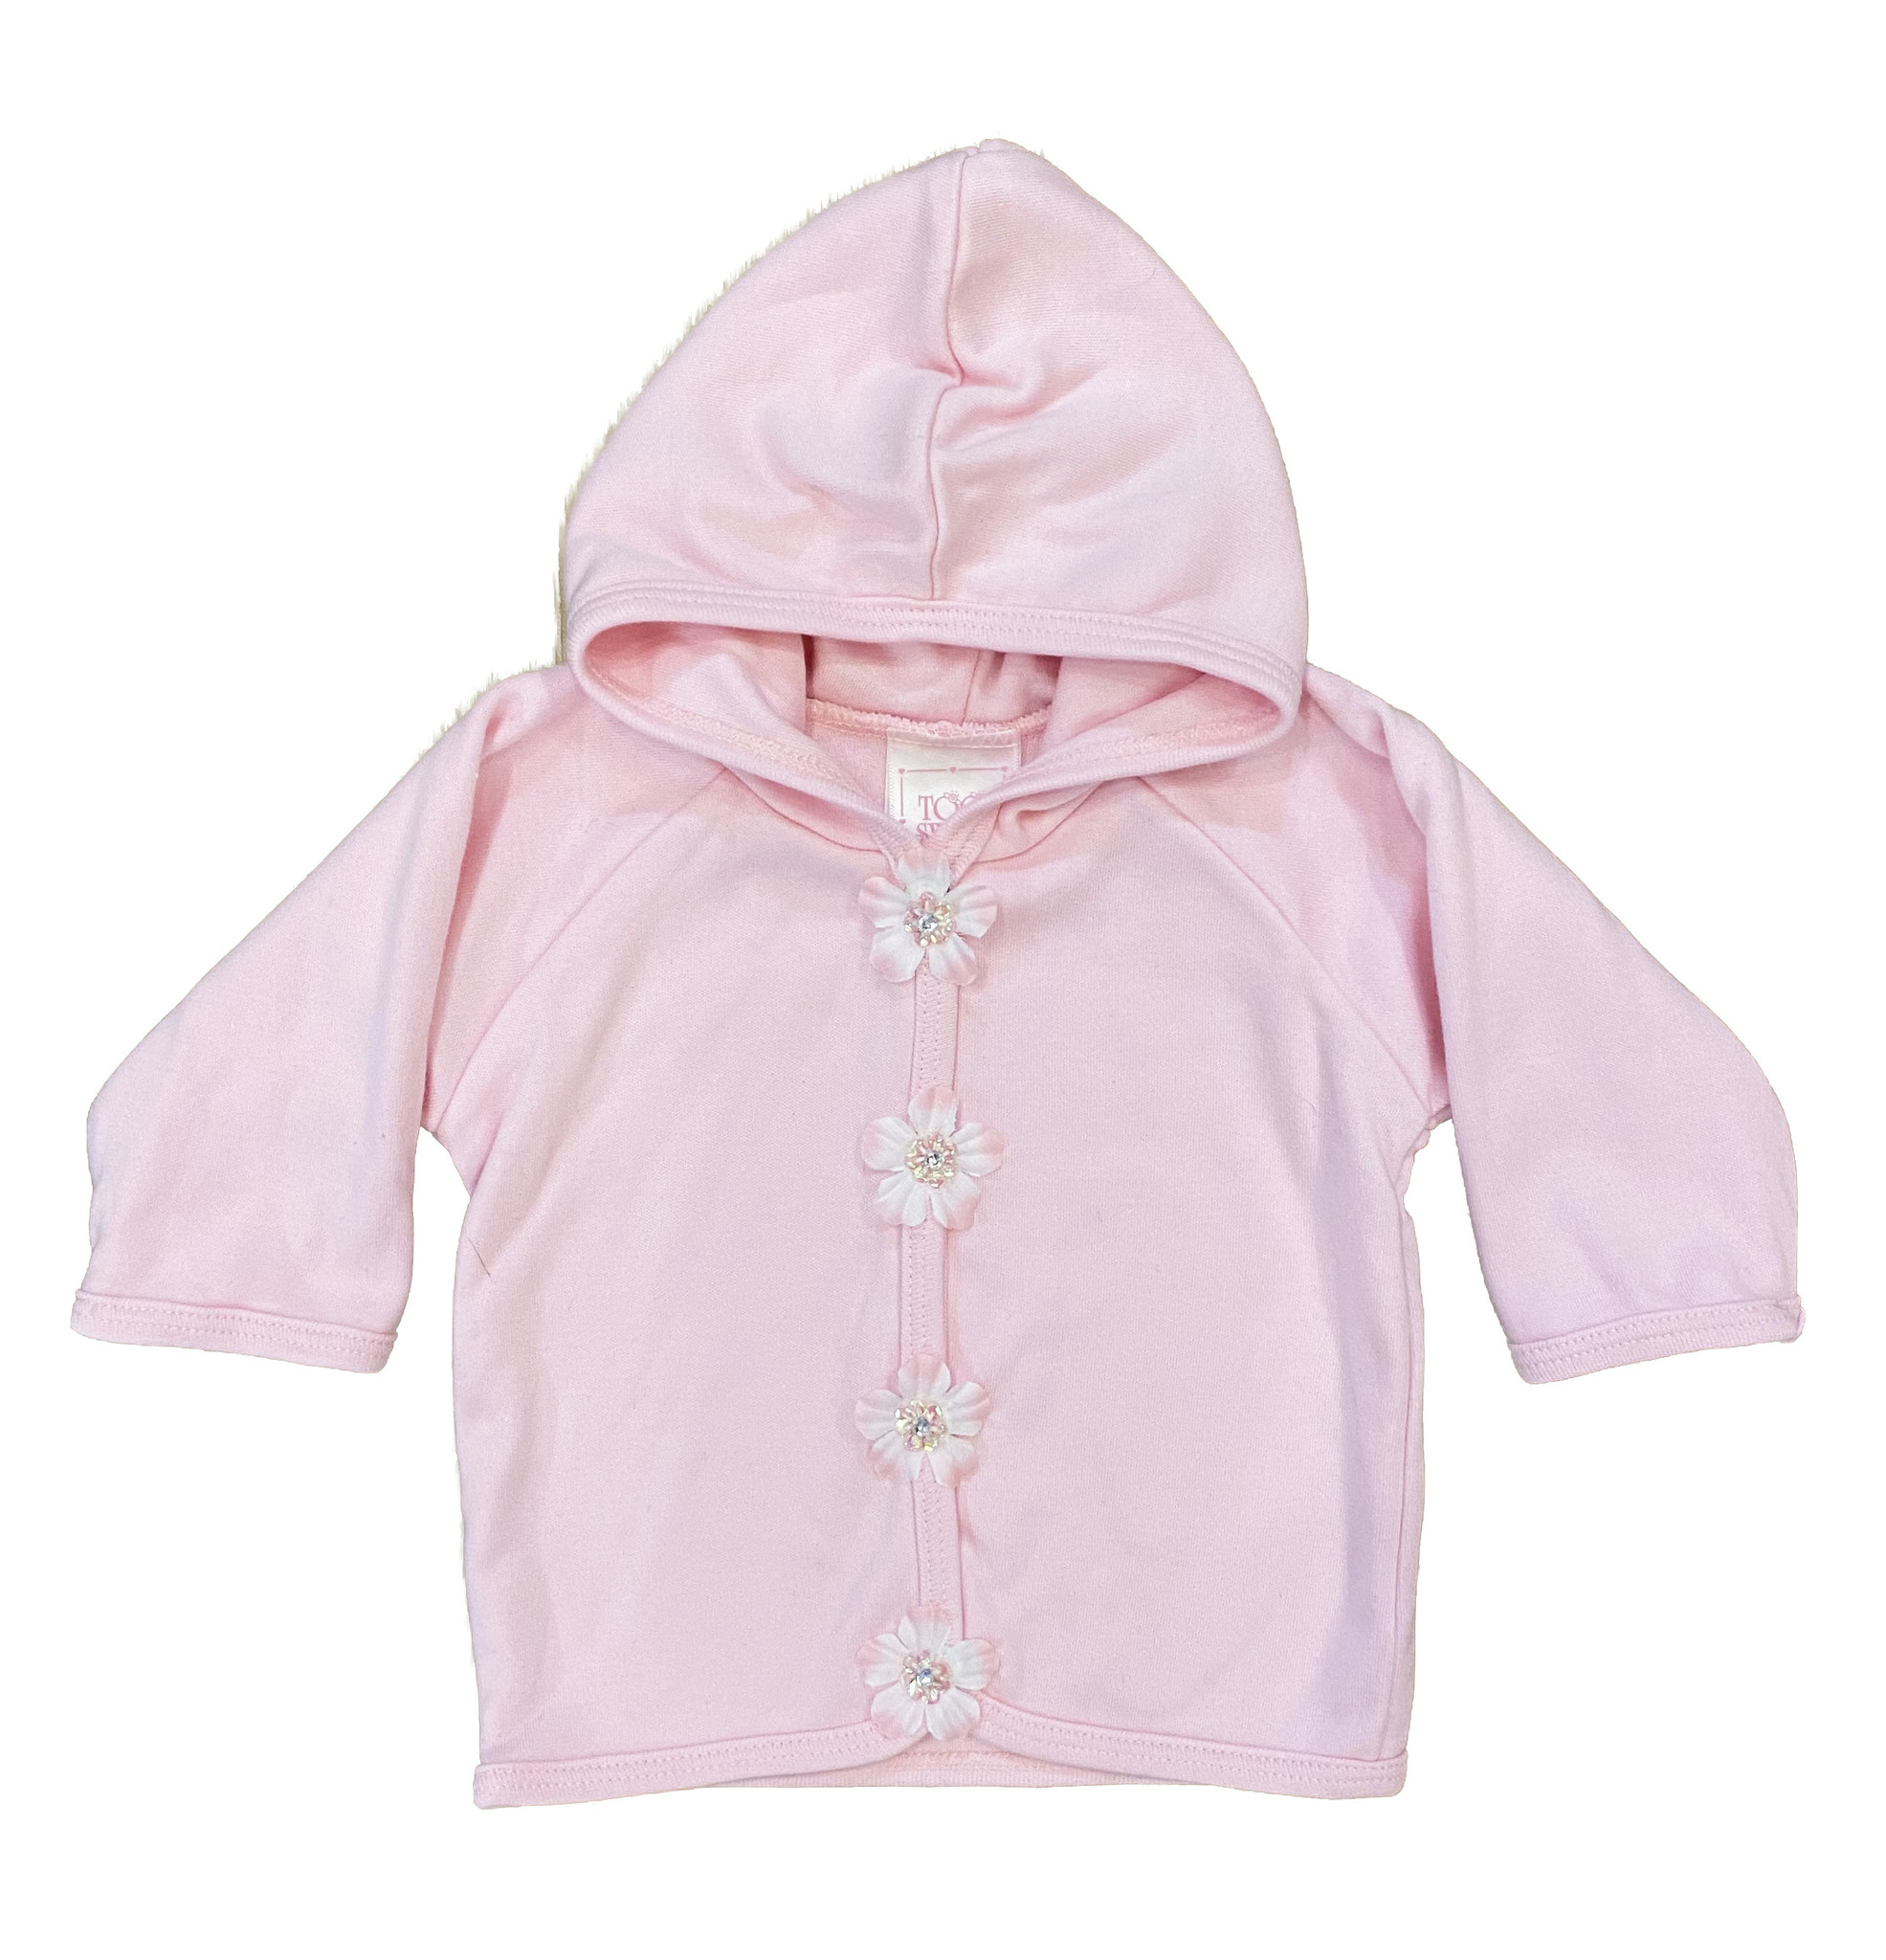 Too Sweet Pink with New Flowers Hooded Jacket